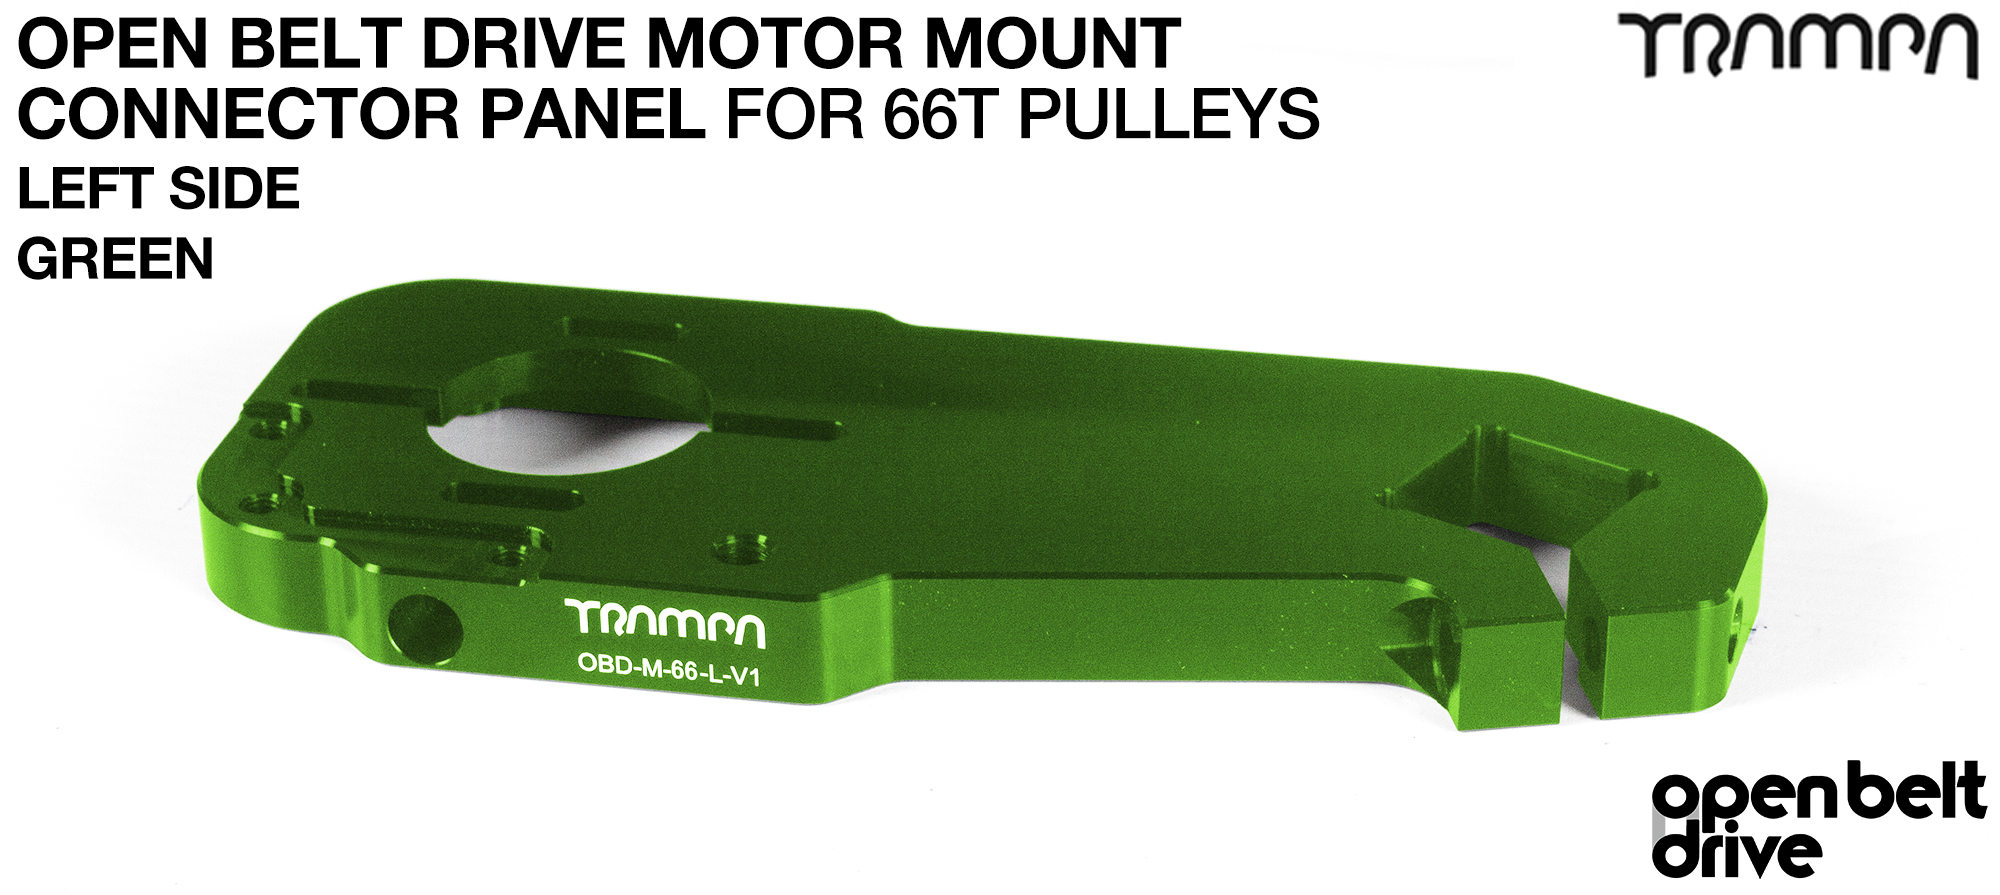 GREEN 66T TWIN OBD Motor Mount Panels